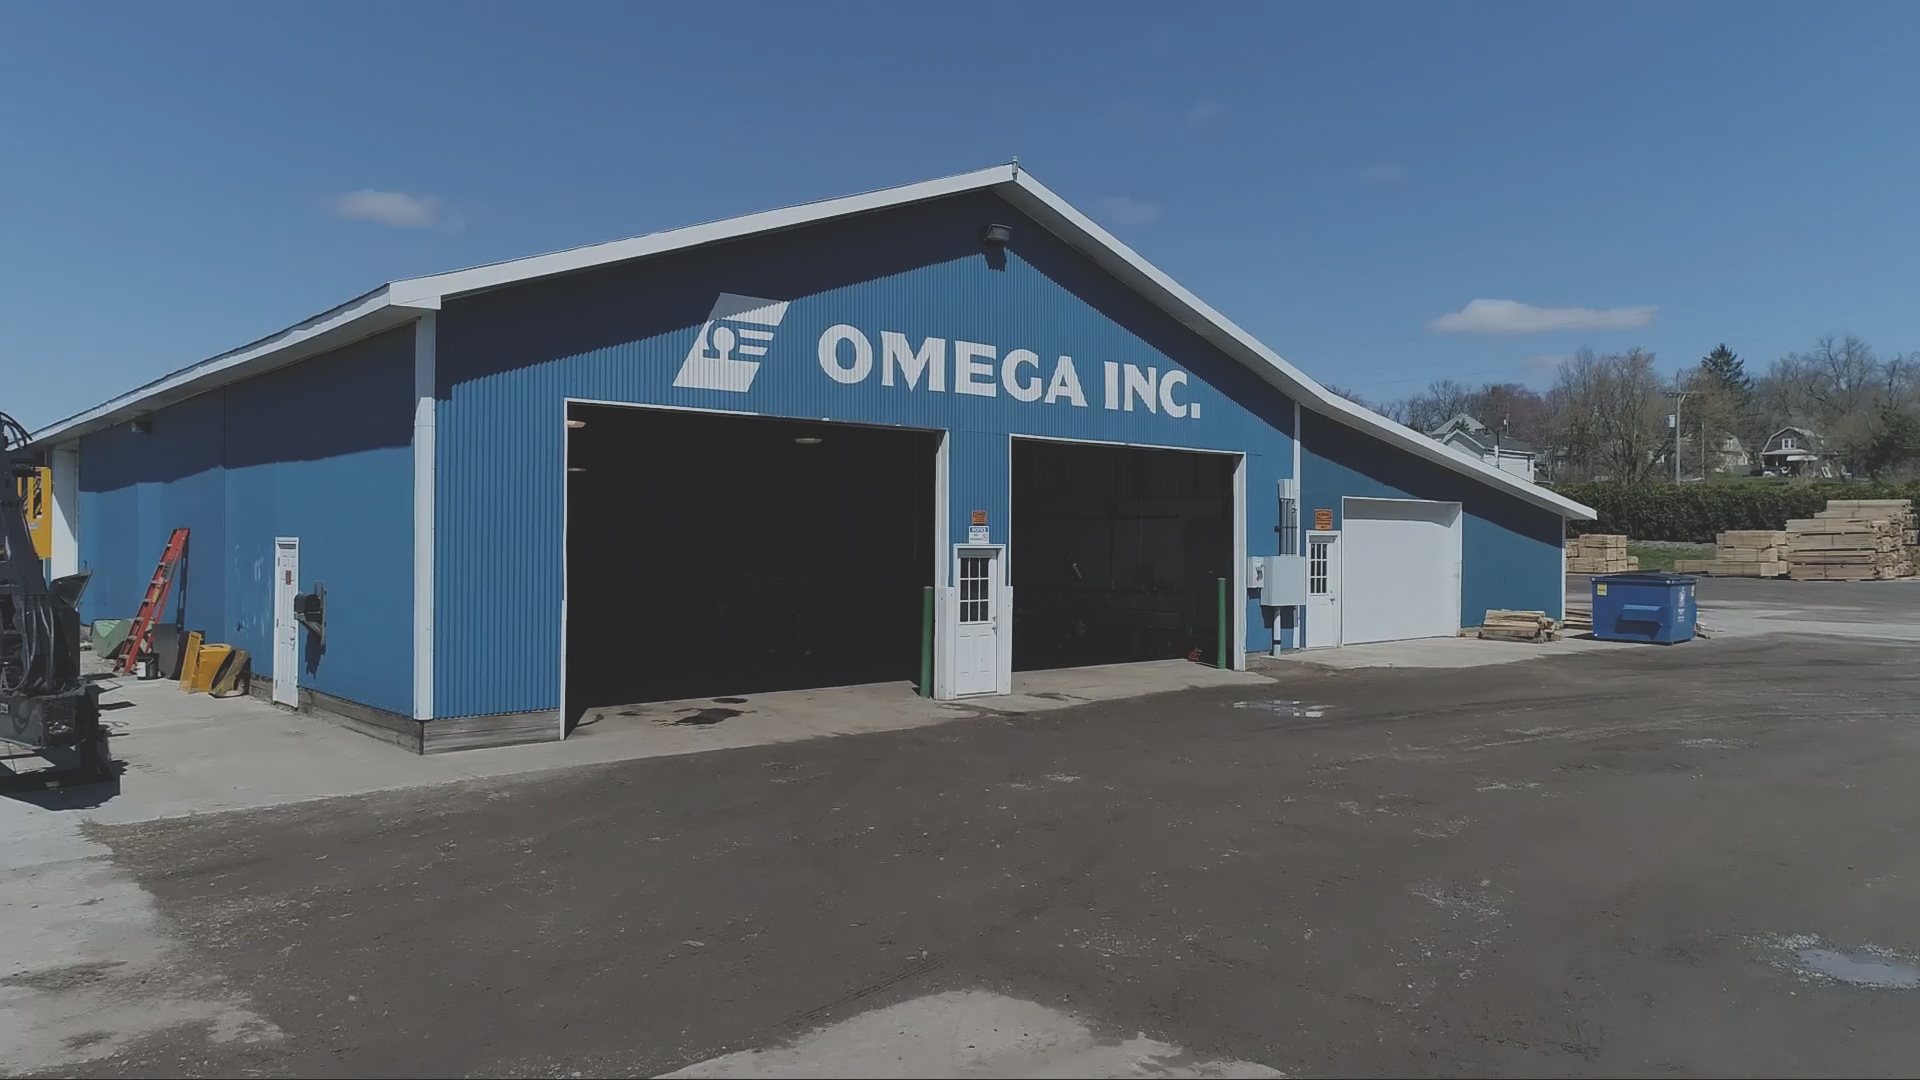 Omega Incorporated exterior